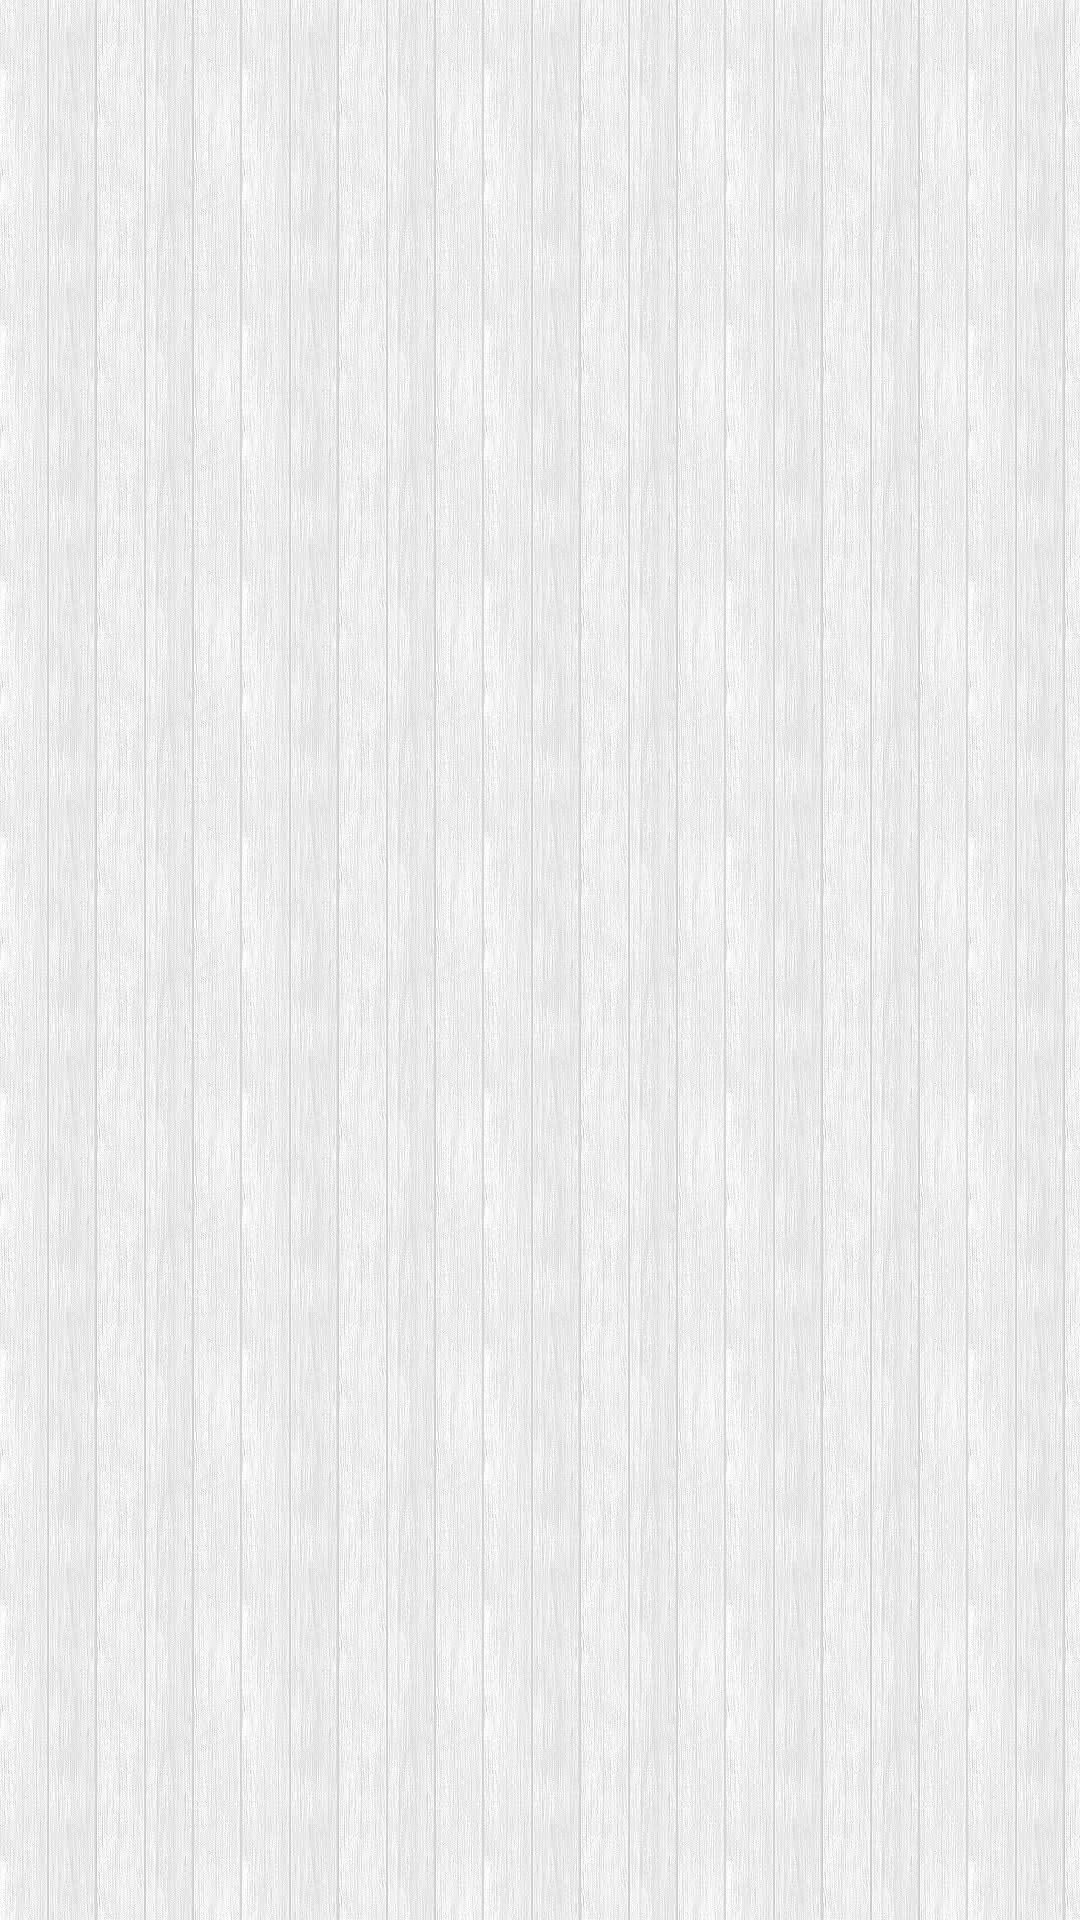 white wooden planks tap to see more hd iphone android wallpapers backgrounds